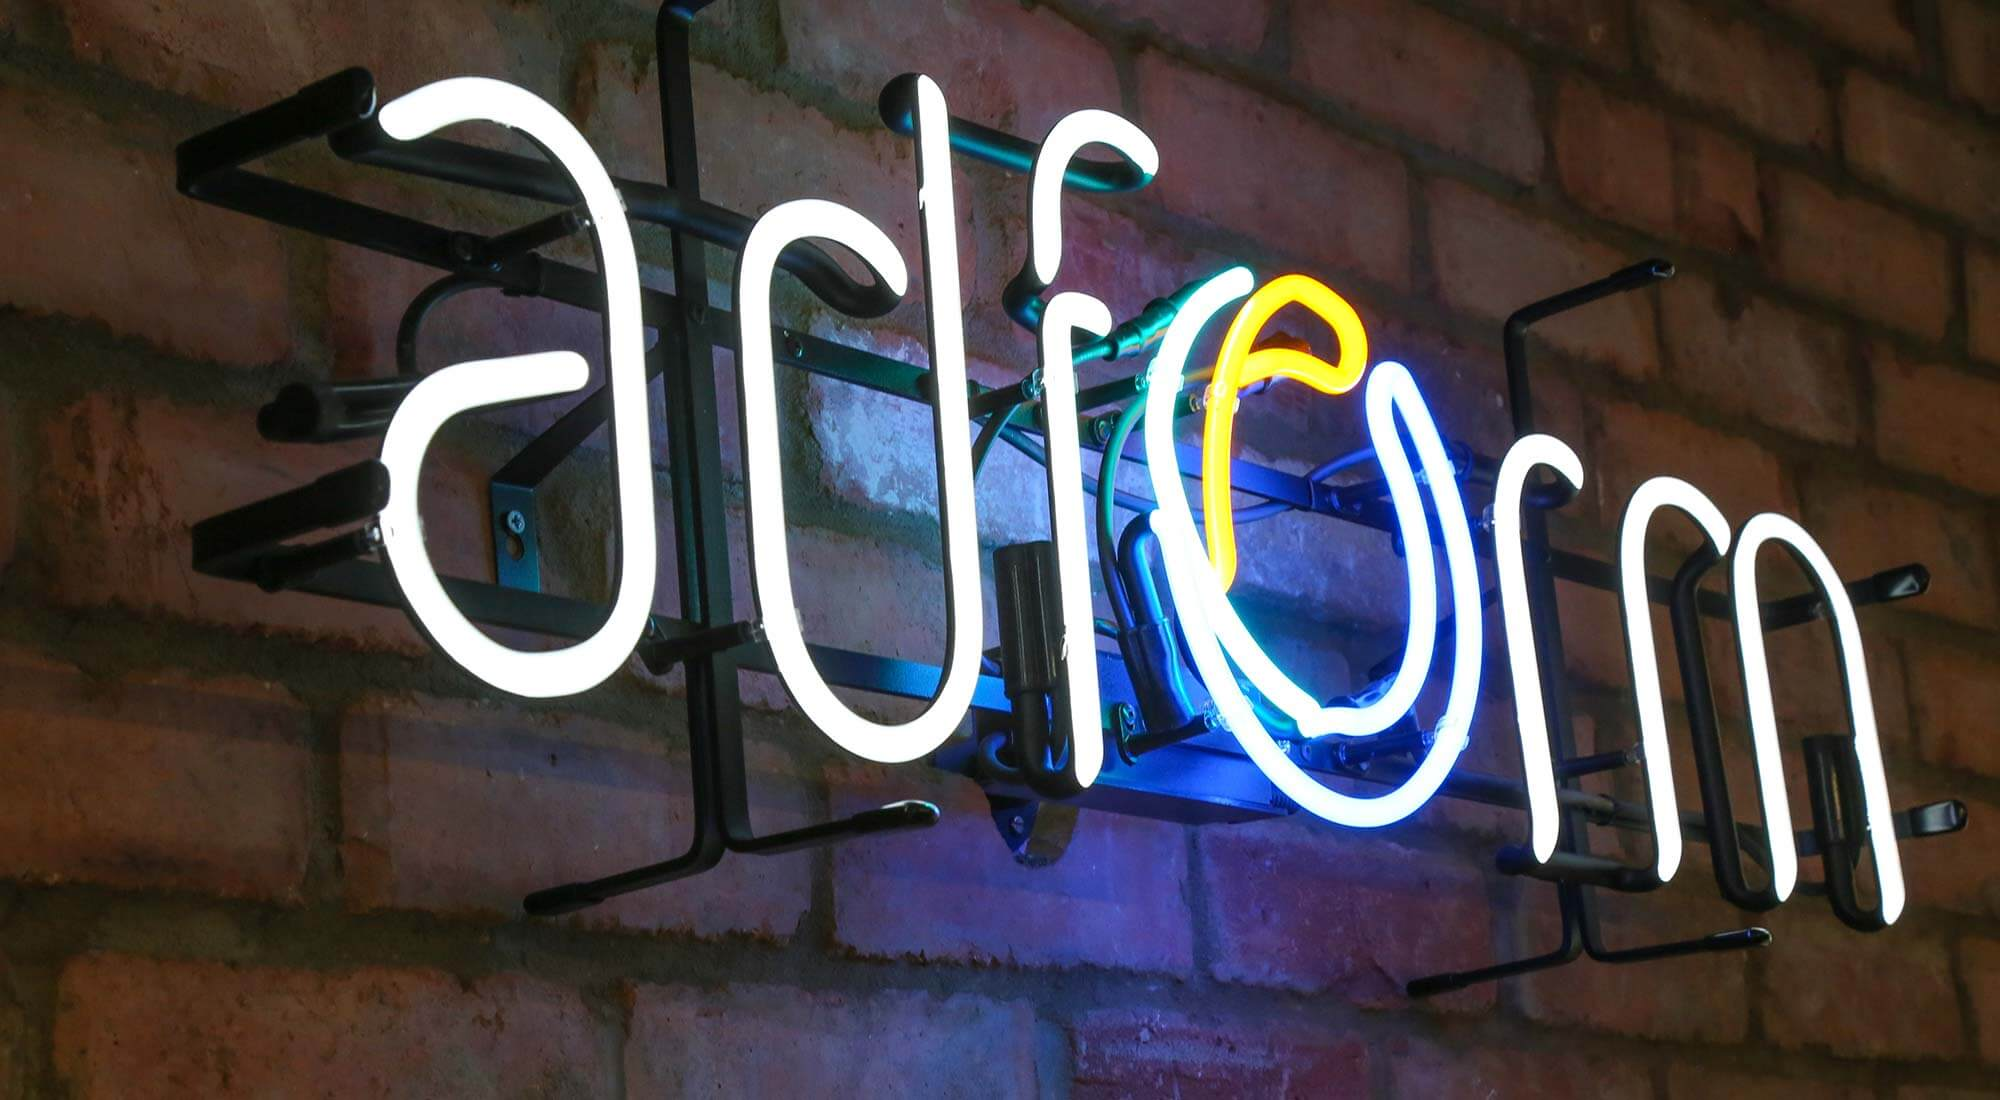 office design company transforms adform bespoke neon sign